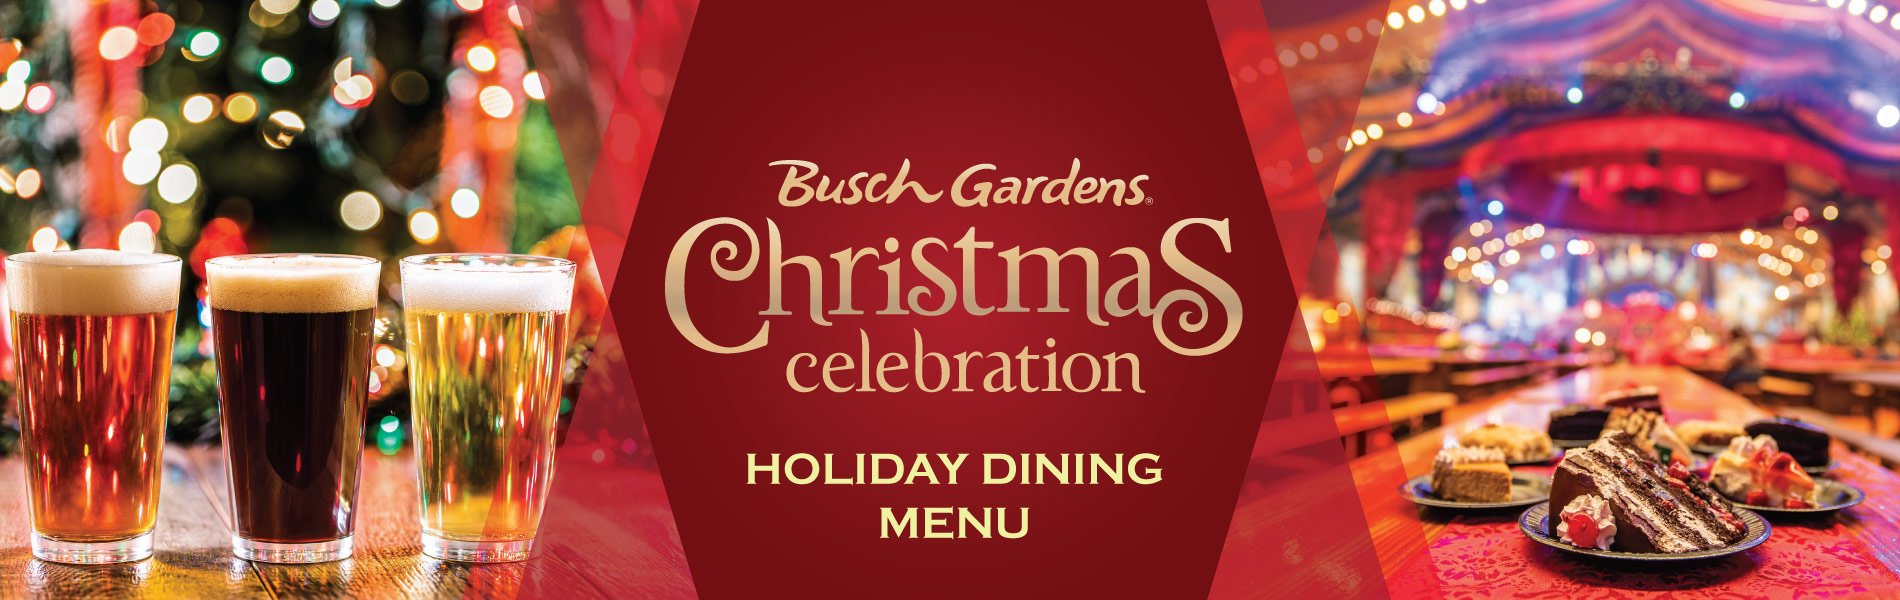 Holiday Dining Menu